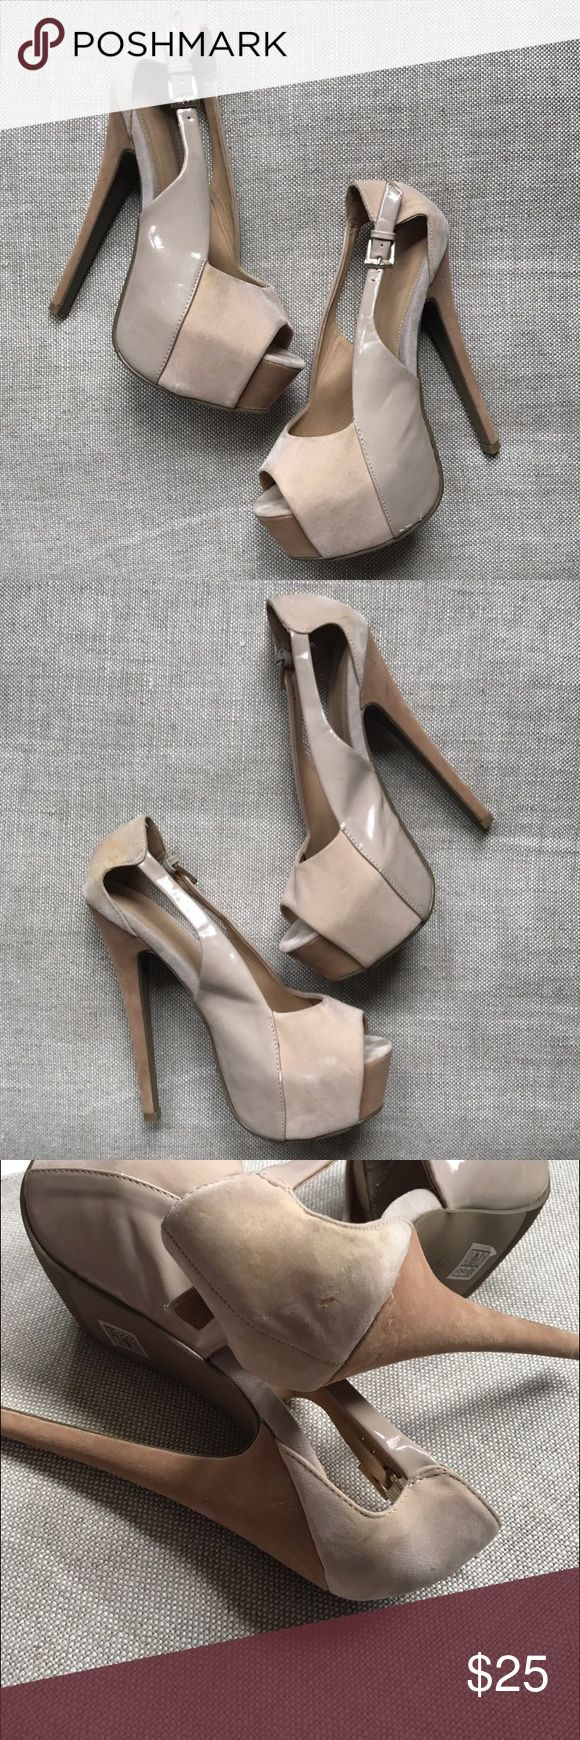 Hidden Platform Stiletto Pumps Patent Leather Nude Hidden Platform Stiletto Pumps Patent Leather Nude   These show wear, please see pics. Unbranded, I purchased them years ago from a boutique in the U.K.  Marked Size 9, but fit more of a 8/8.5  Approx Measurements:  Heel Height - 6.5in Platform - 2in Unbranded Shoes Platforms